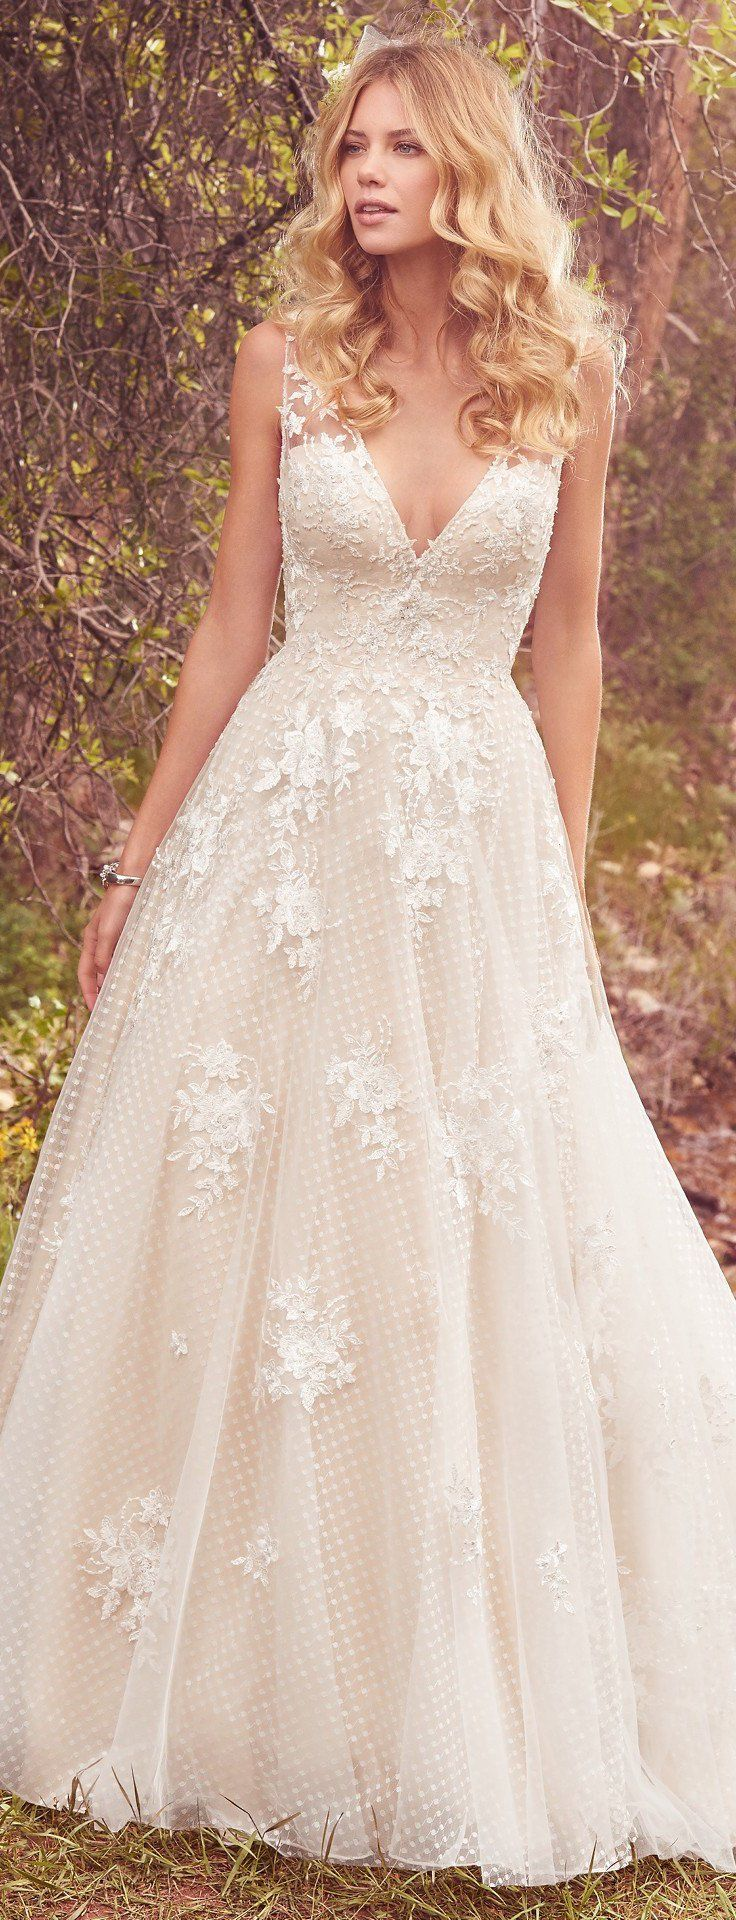 pretty wedding dresses cute wedding dresses Maggie Sottero Wedding Dresses